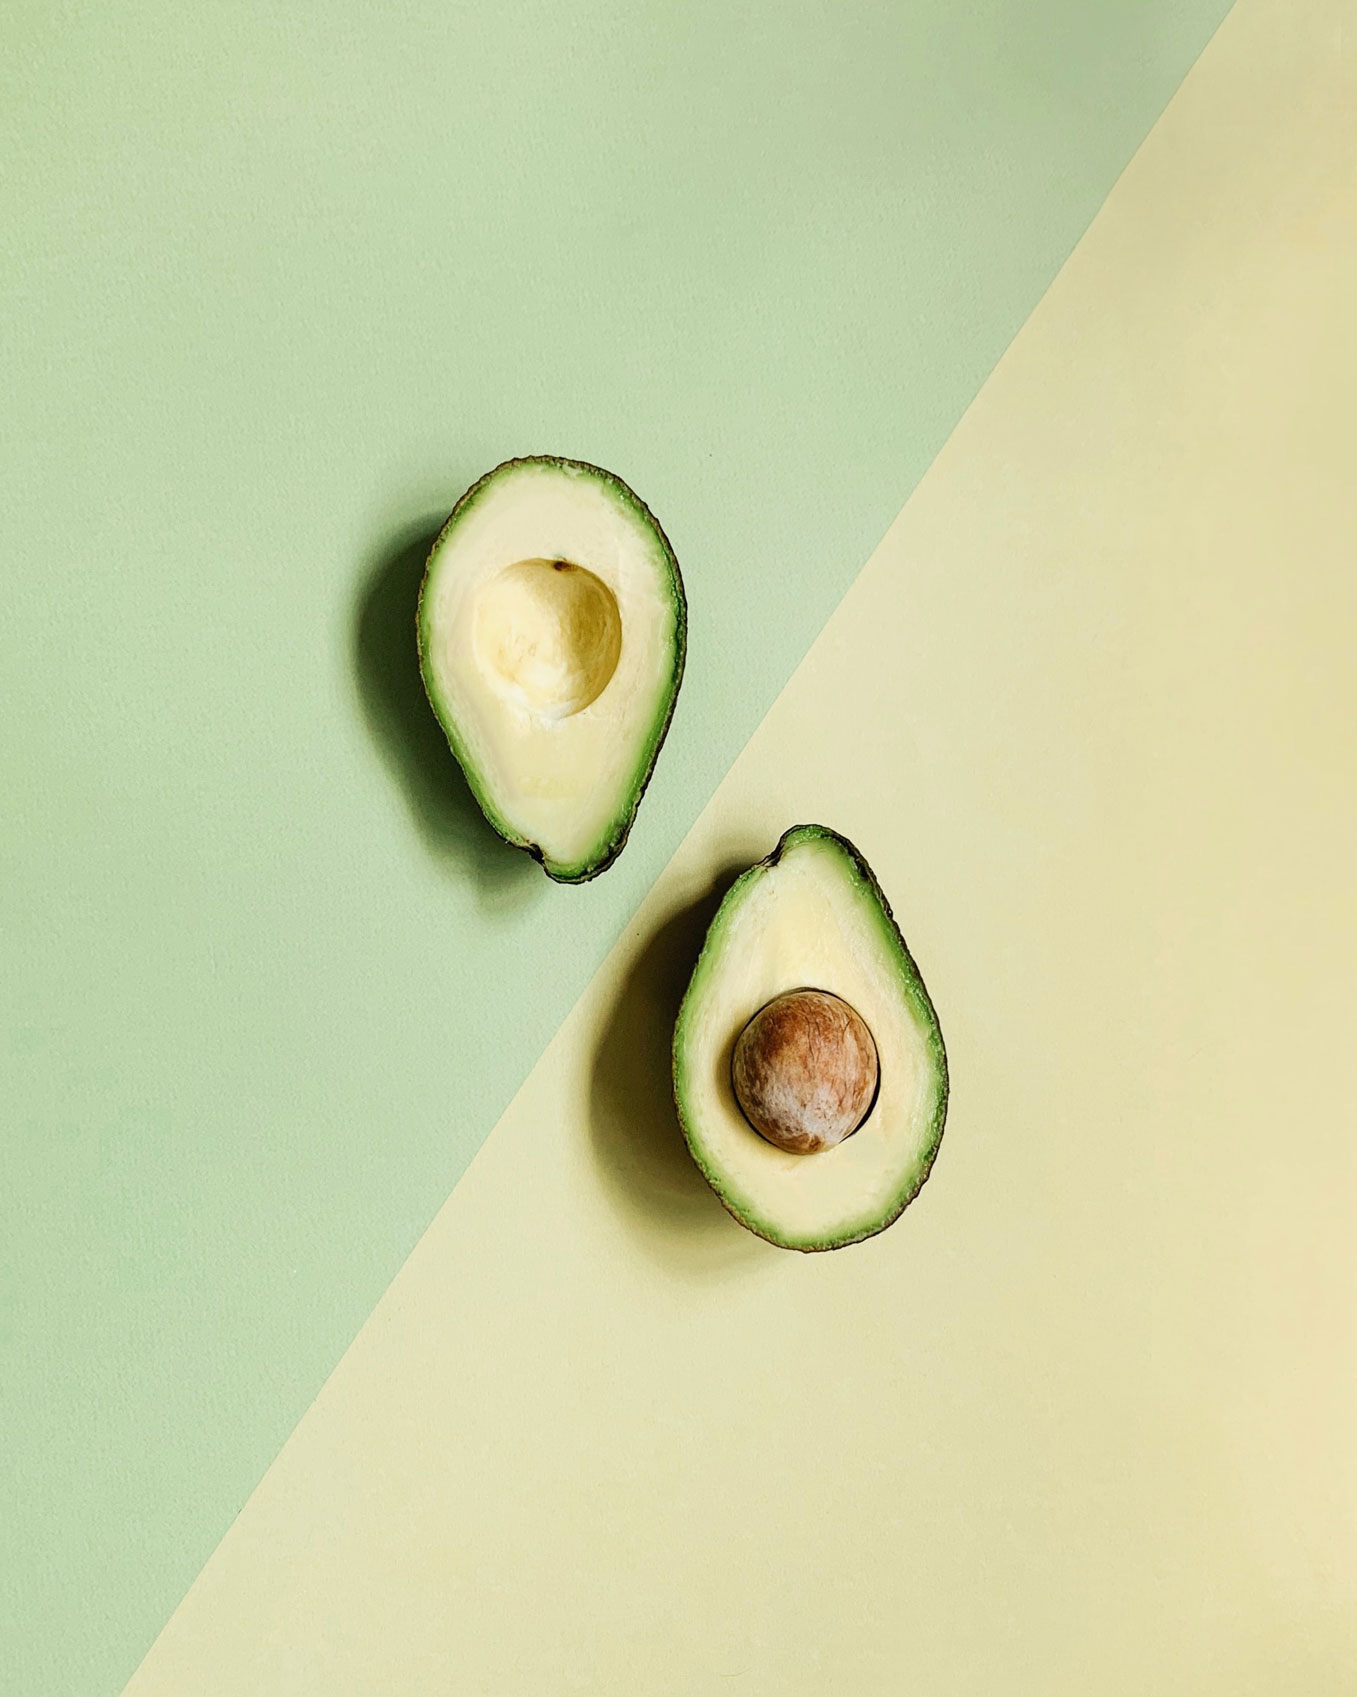 Eat avocado to keep yourself healthy